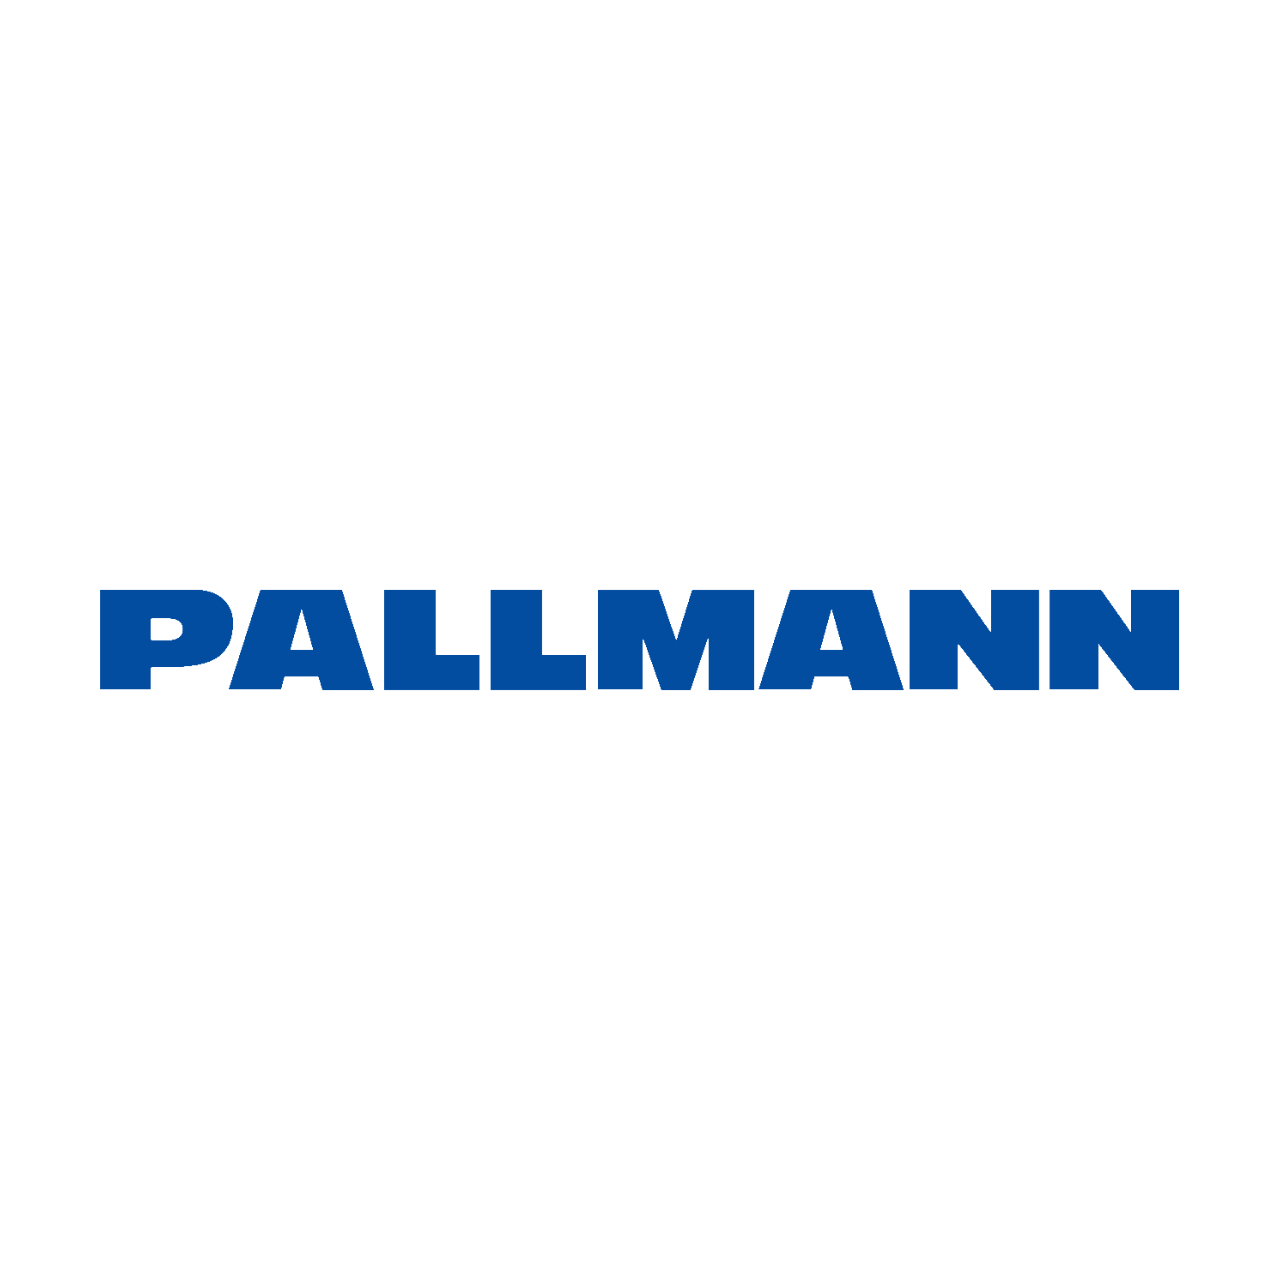 Pallmann - Quality Made in Germany